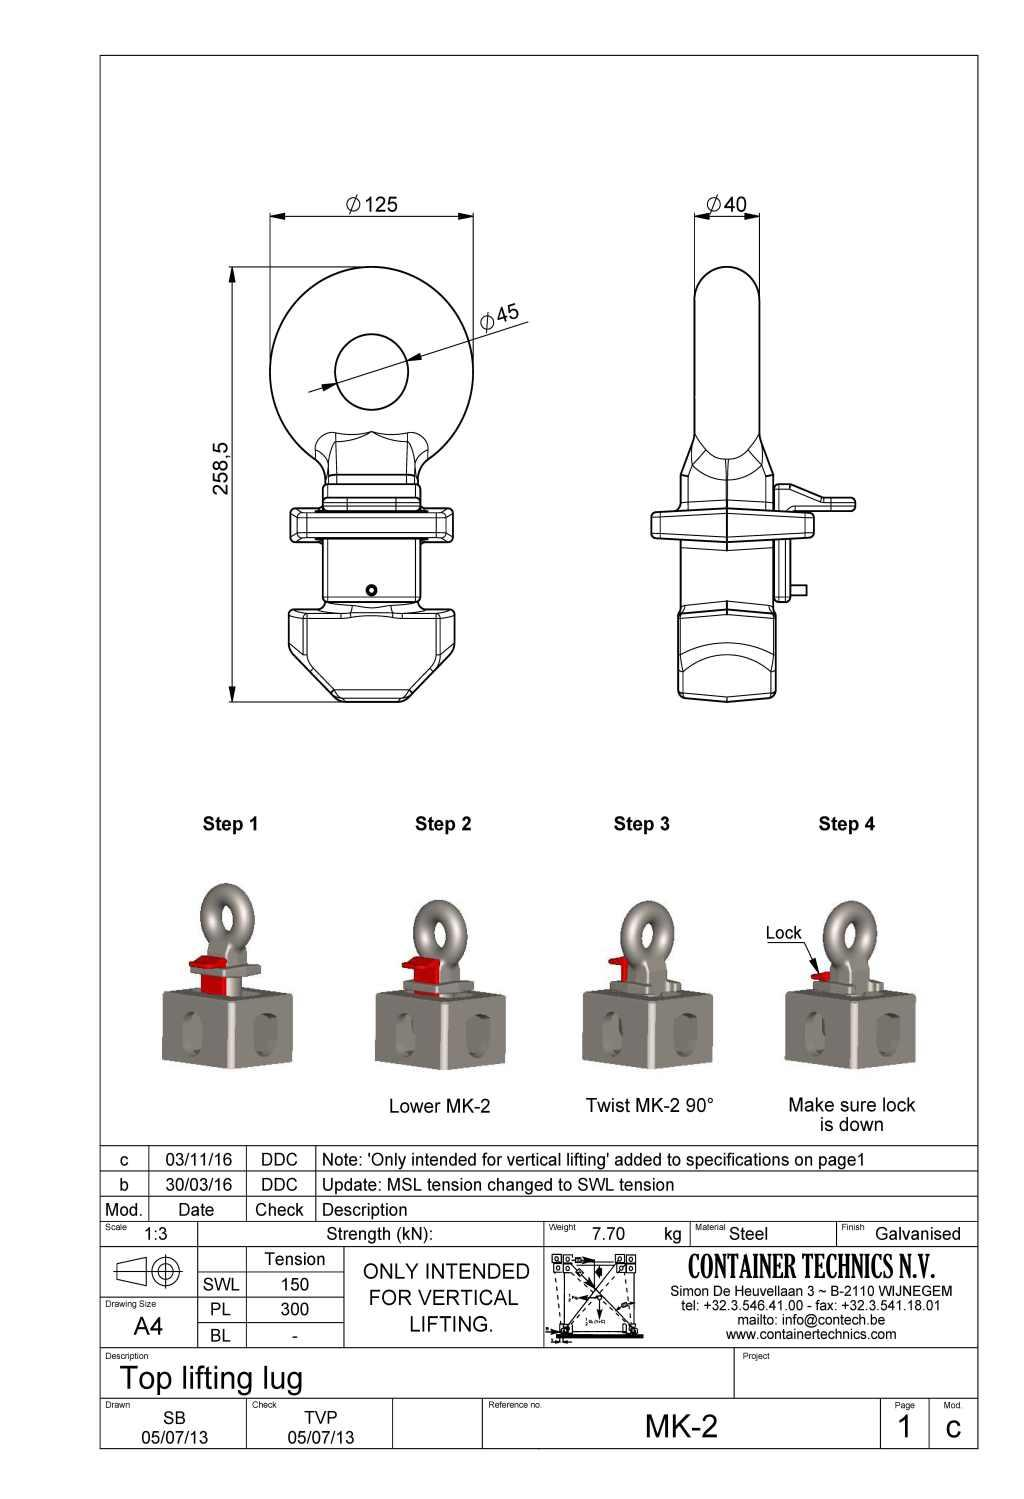 MK-2 TOP LIFTING LUG